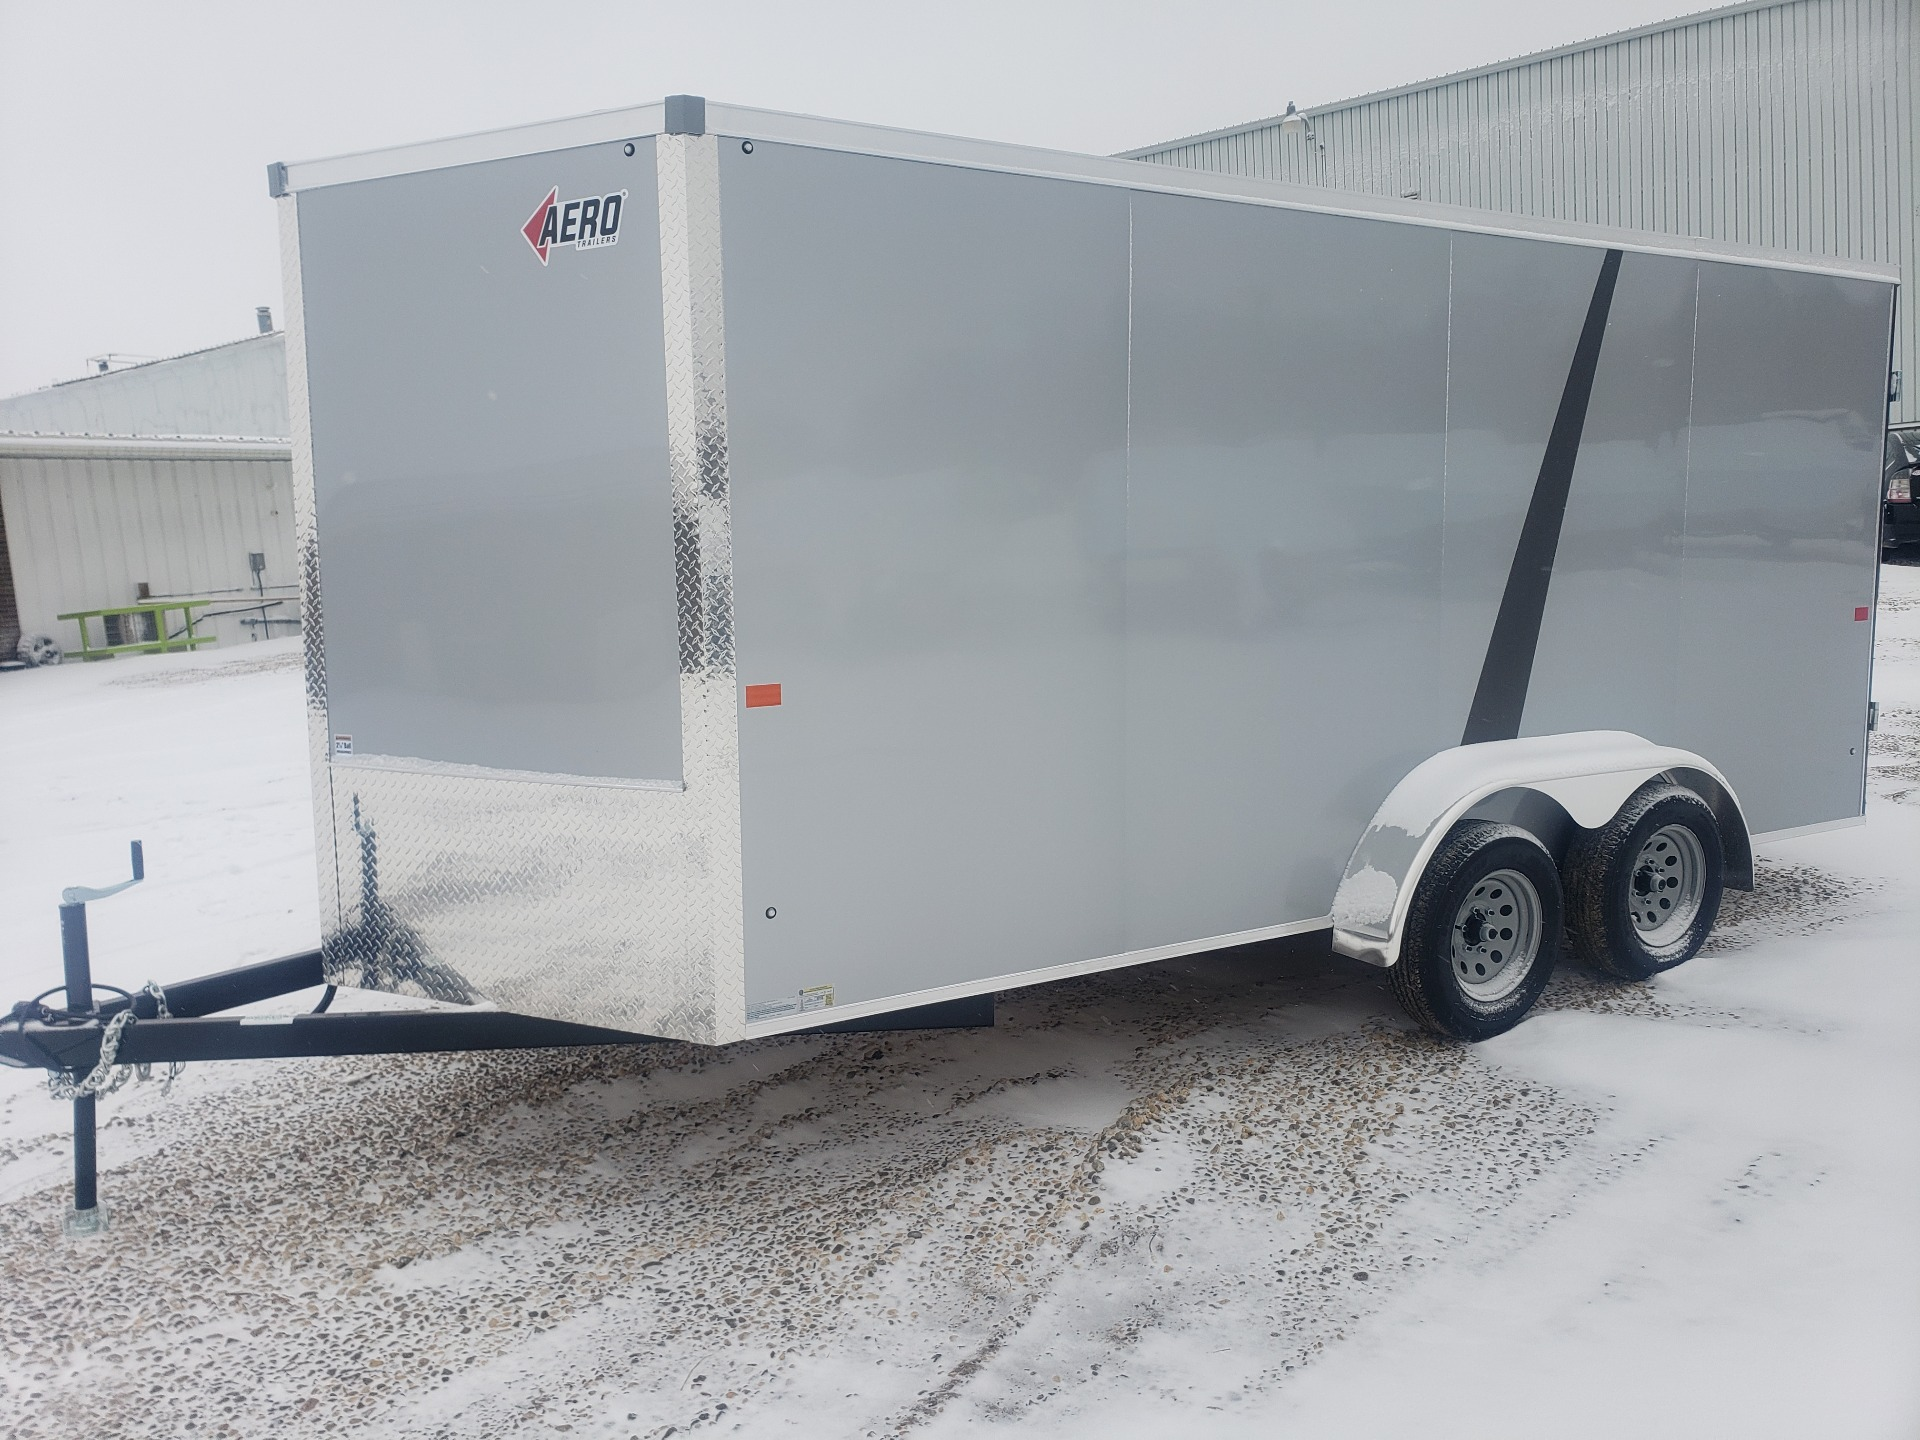 2021 AERO TRAILERS 7X16TA35 in Ortonville, Minnesota - Photo 1